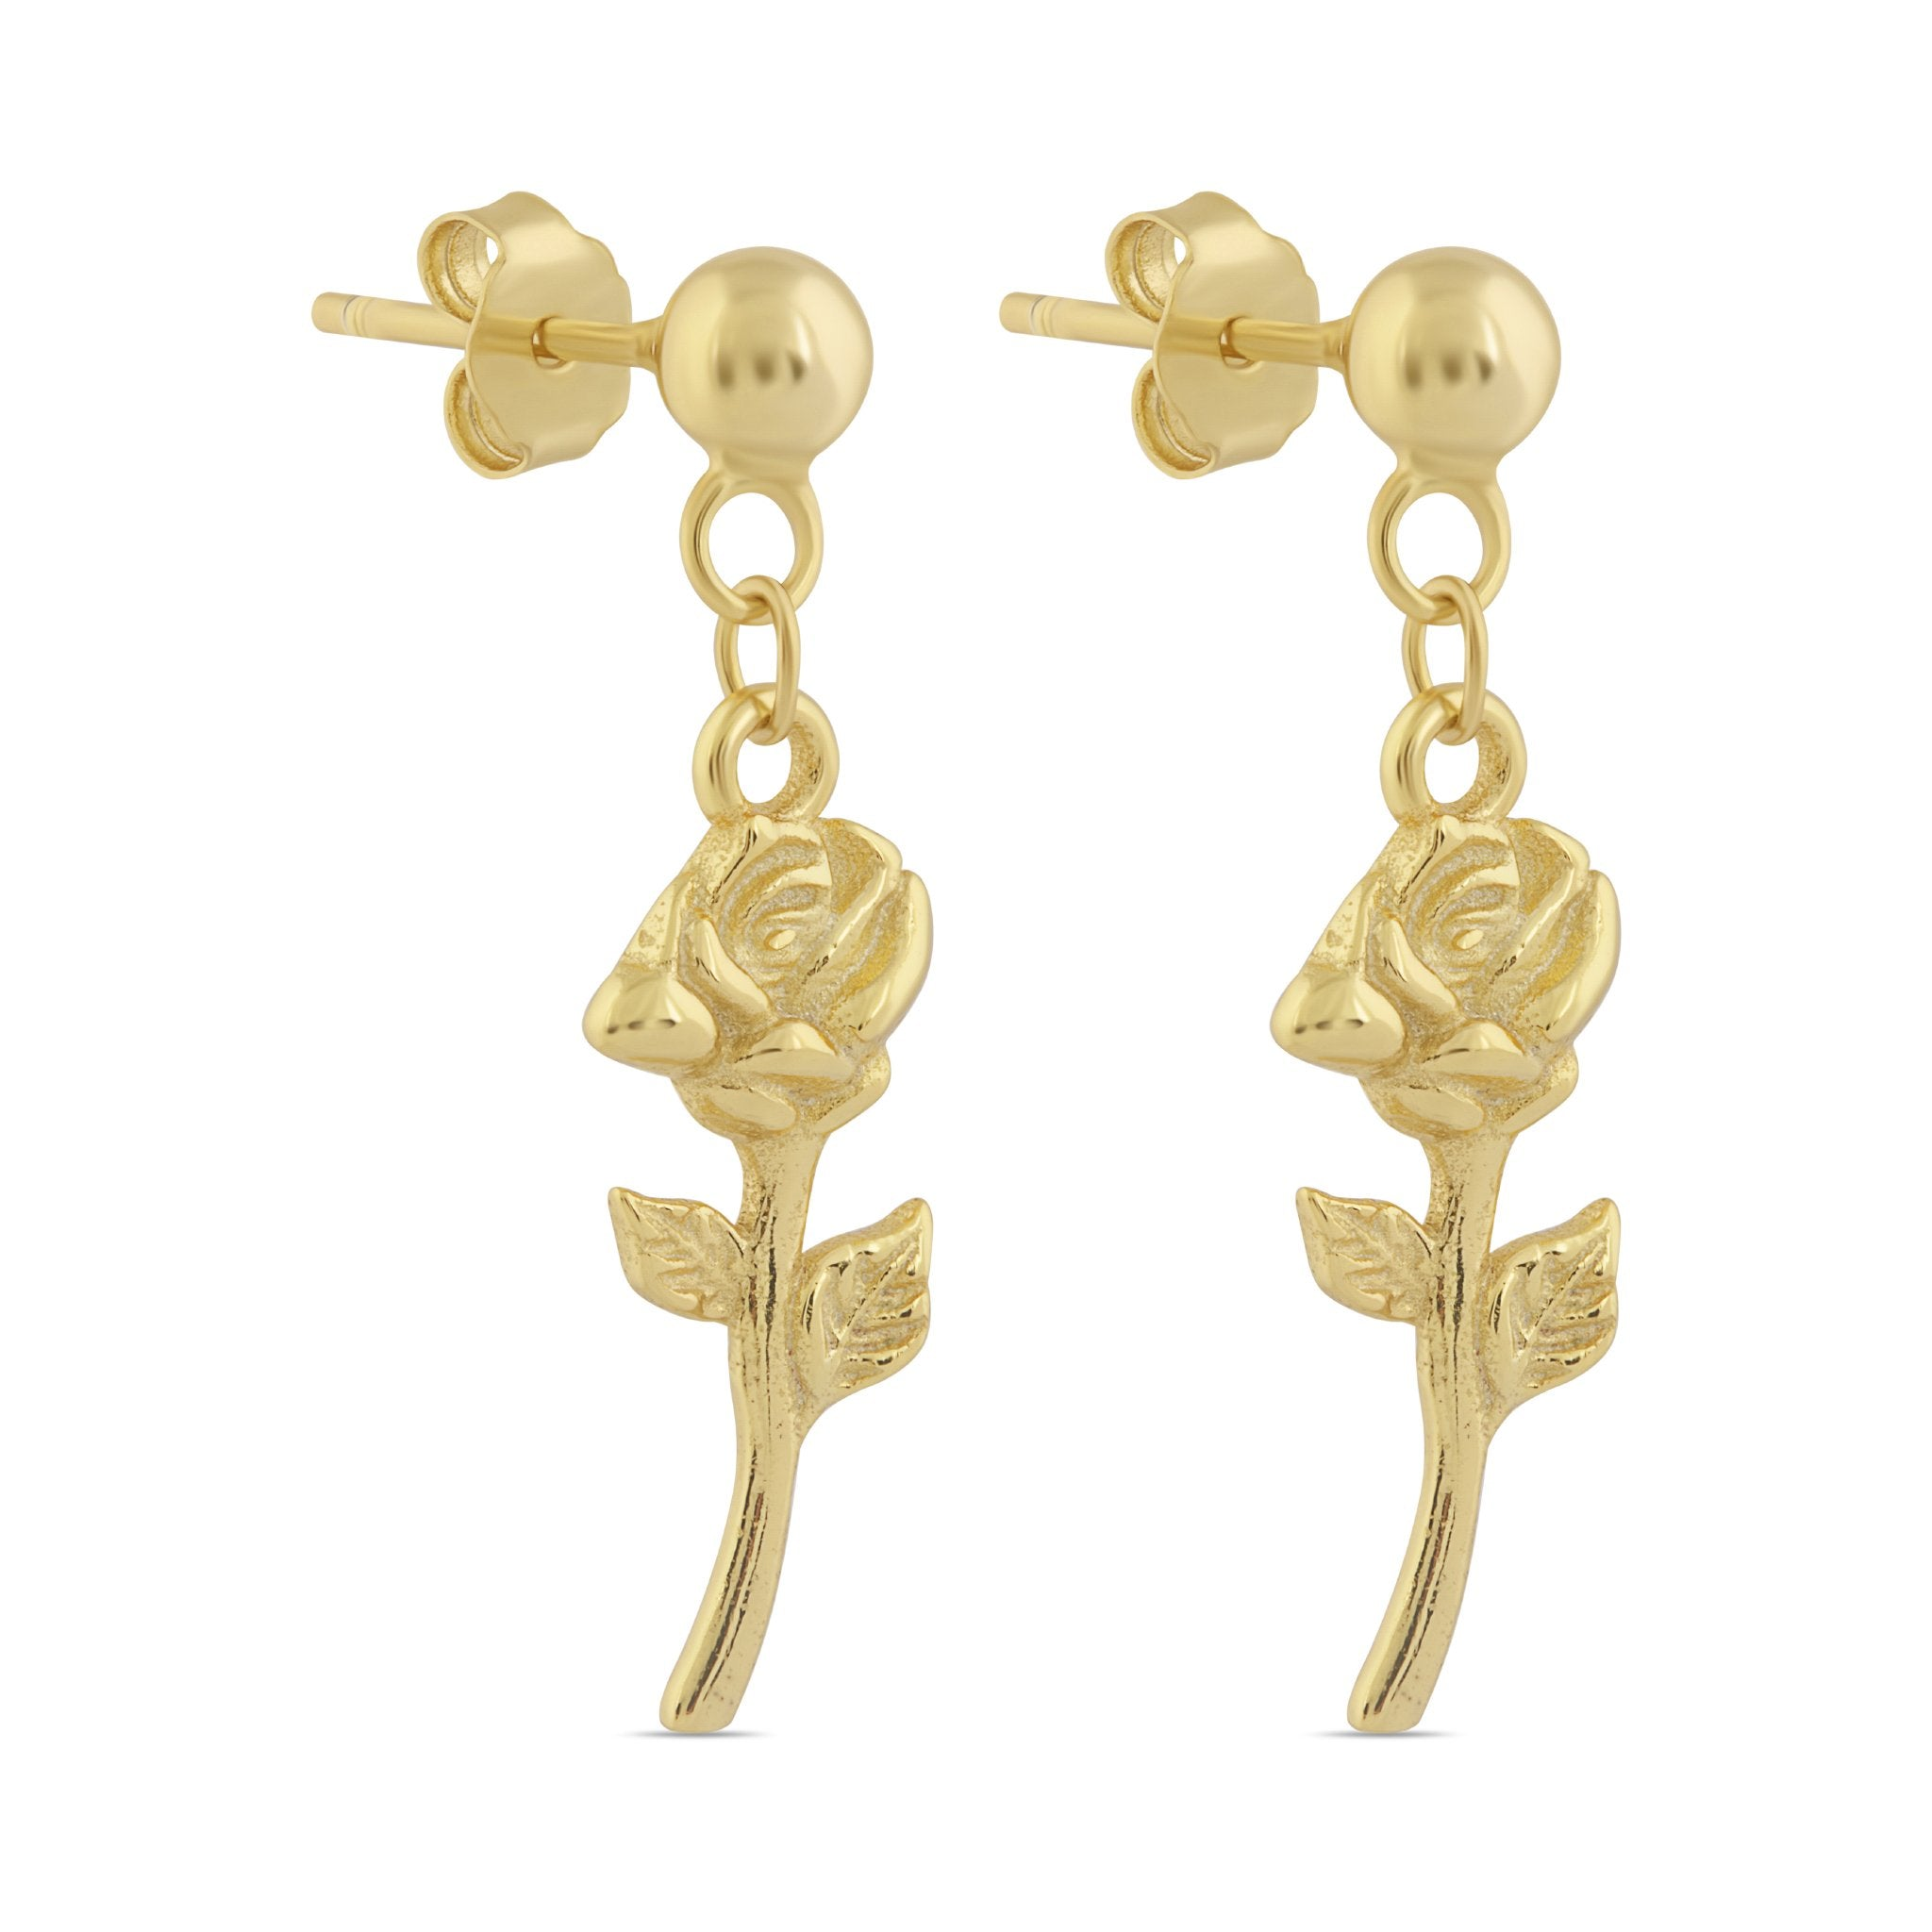 Gorgeous Gold Earrings in Rose Design